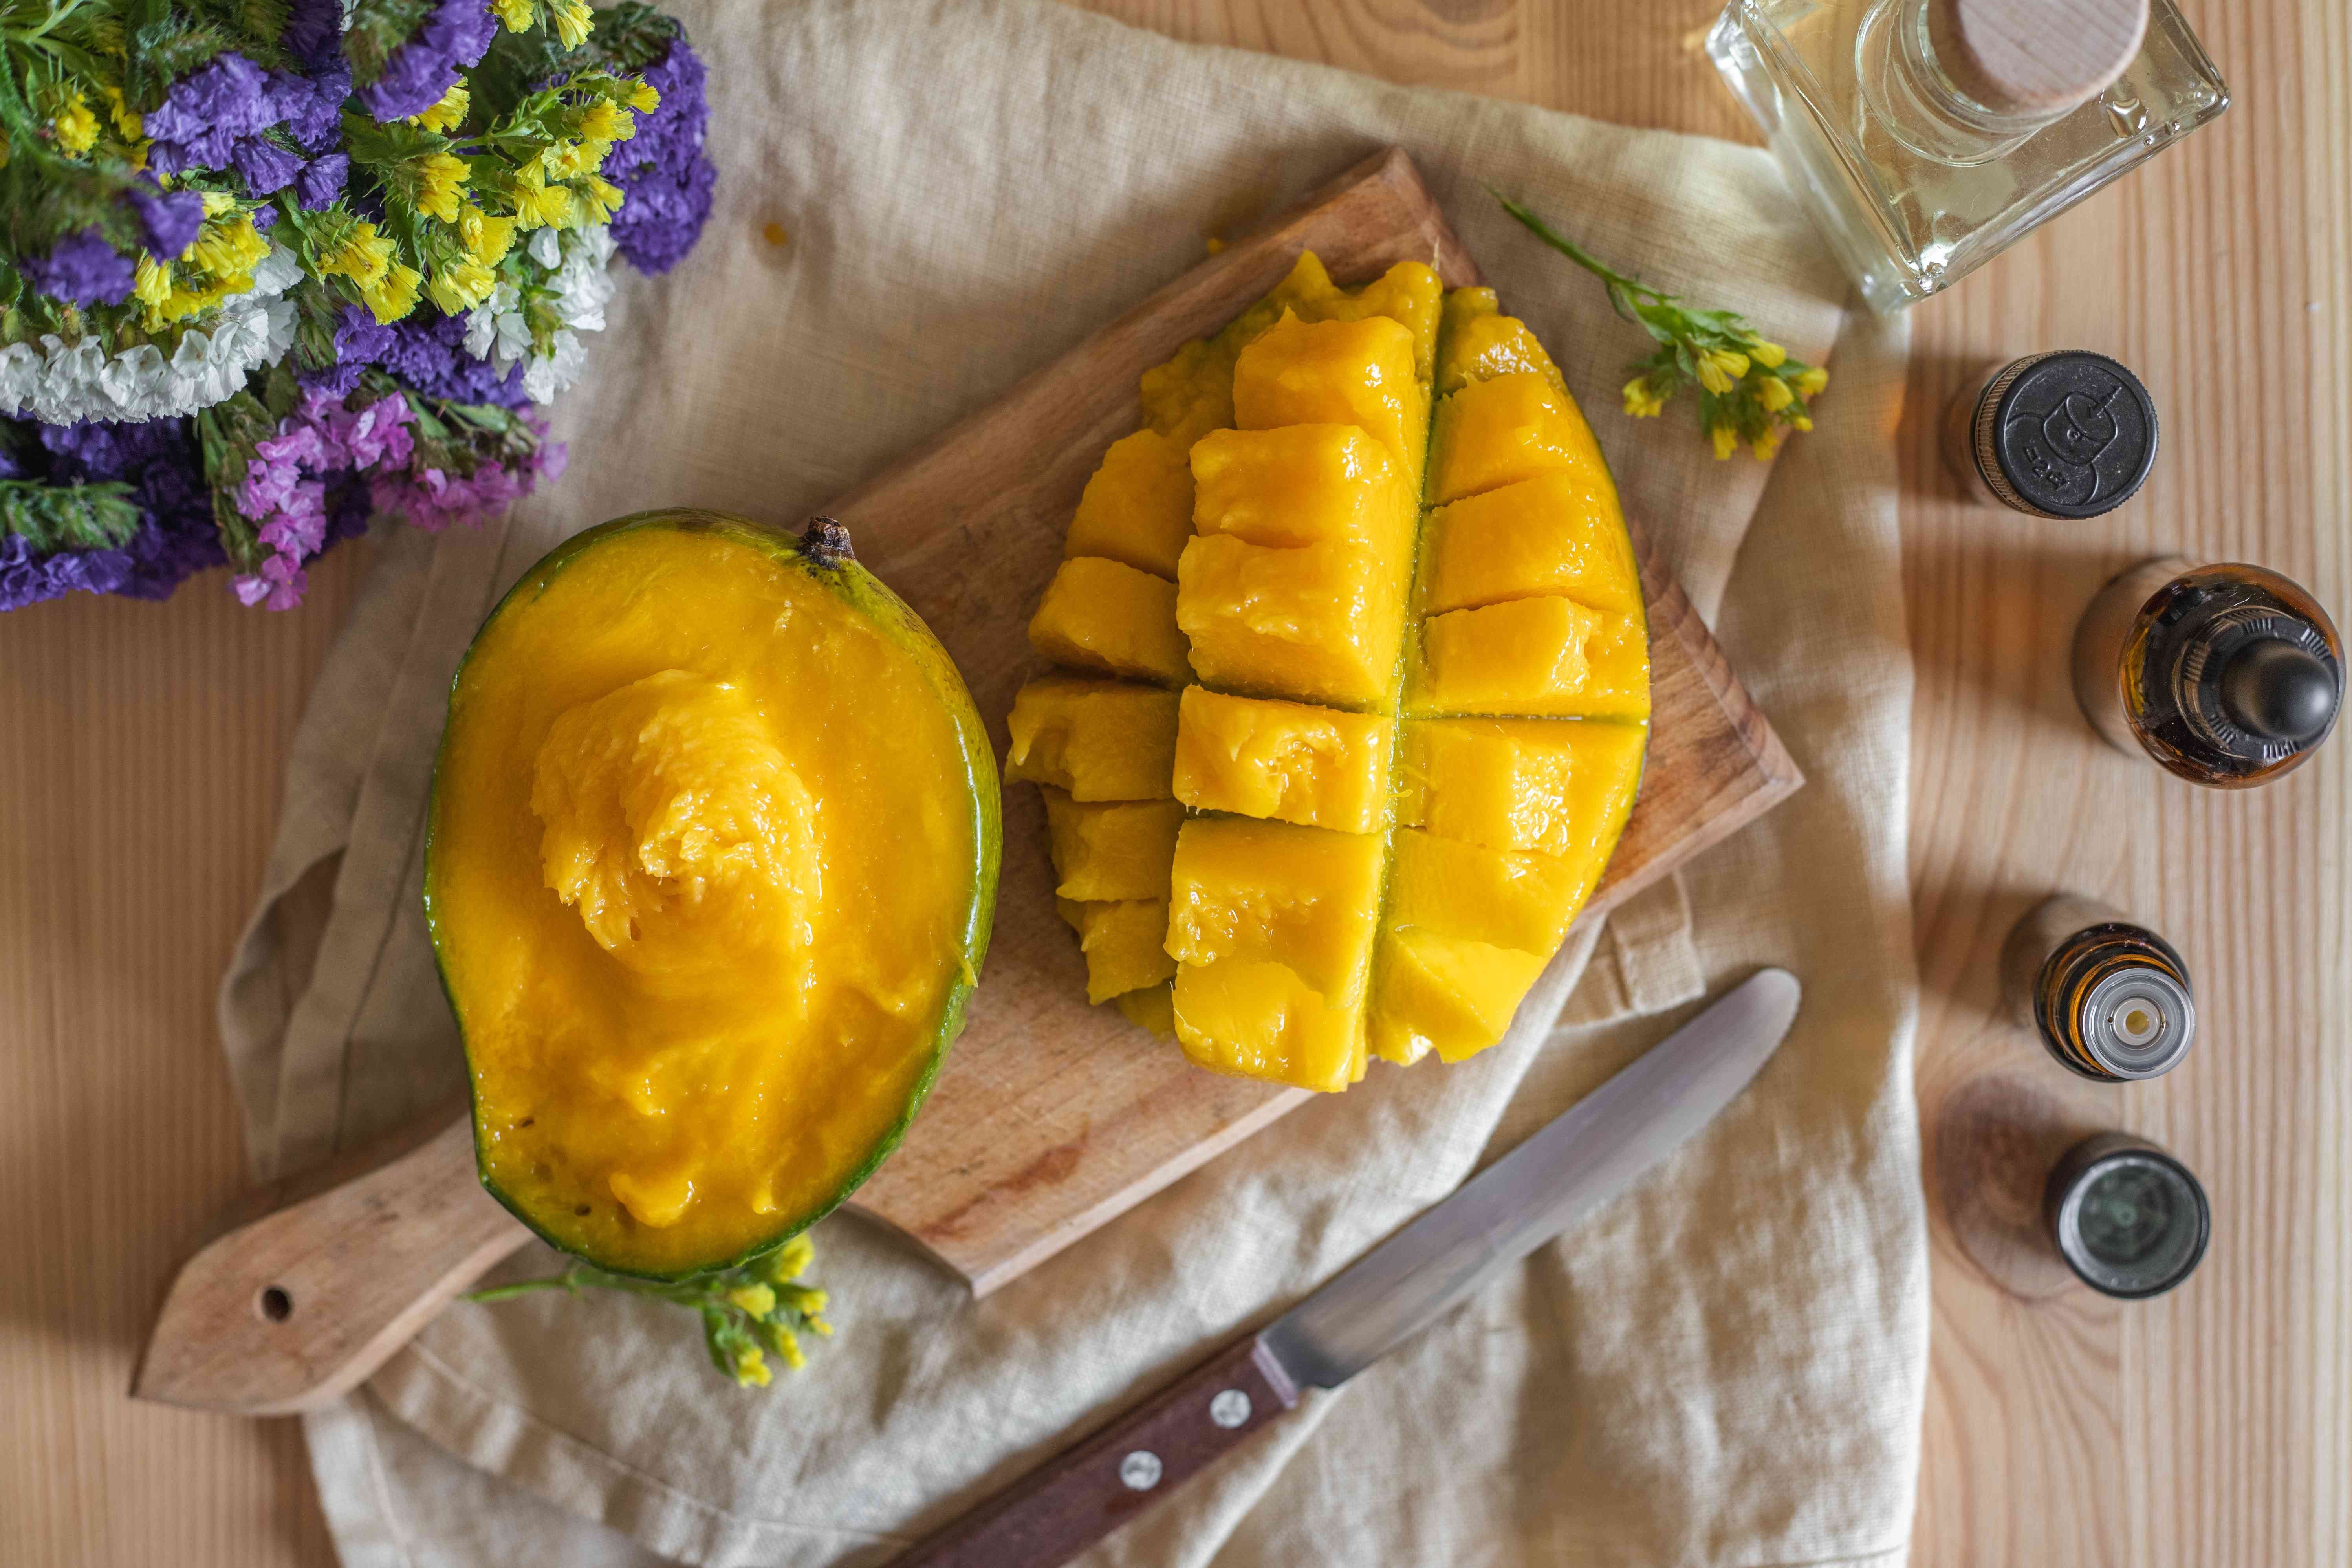 green mango cut in half with one side cubed on wooden cutting board next to fresh flowers